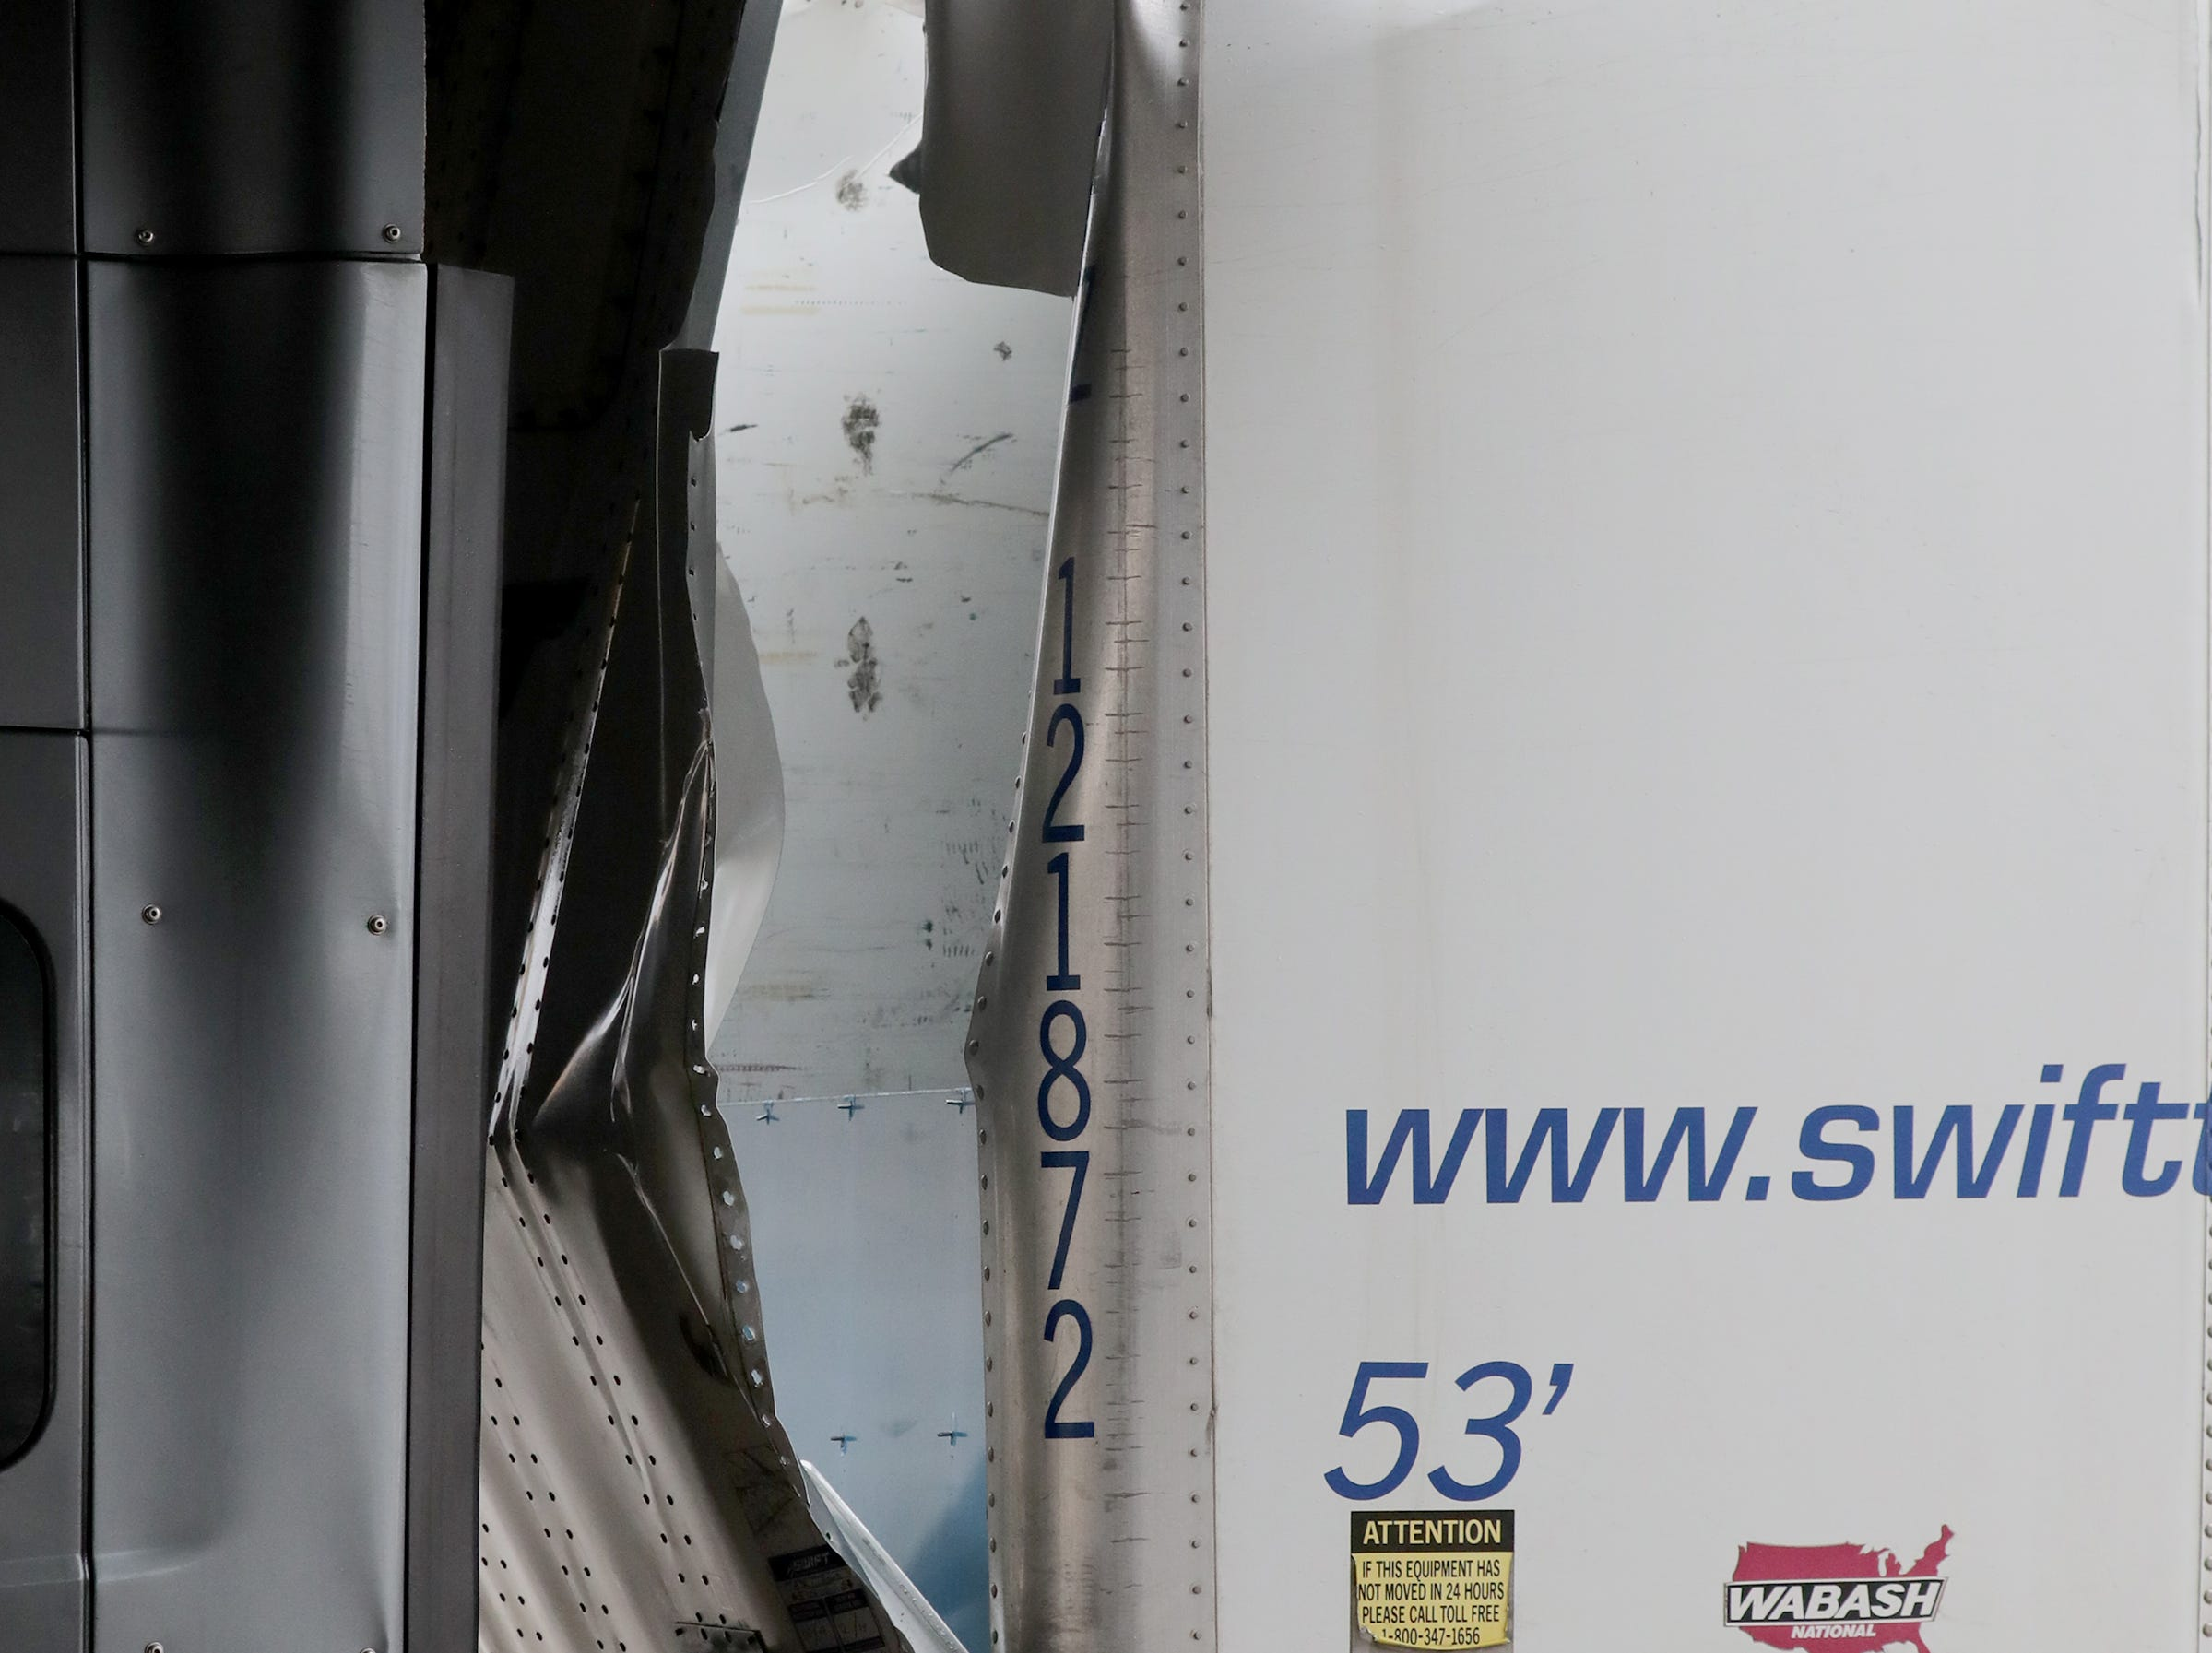 The trailer is damaged of a semi truck is stuck. The trailer was empty.